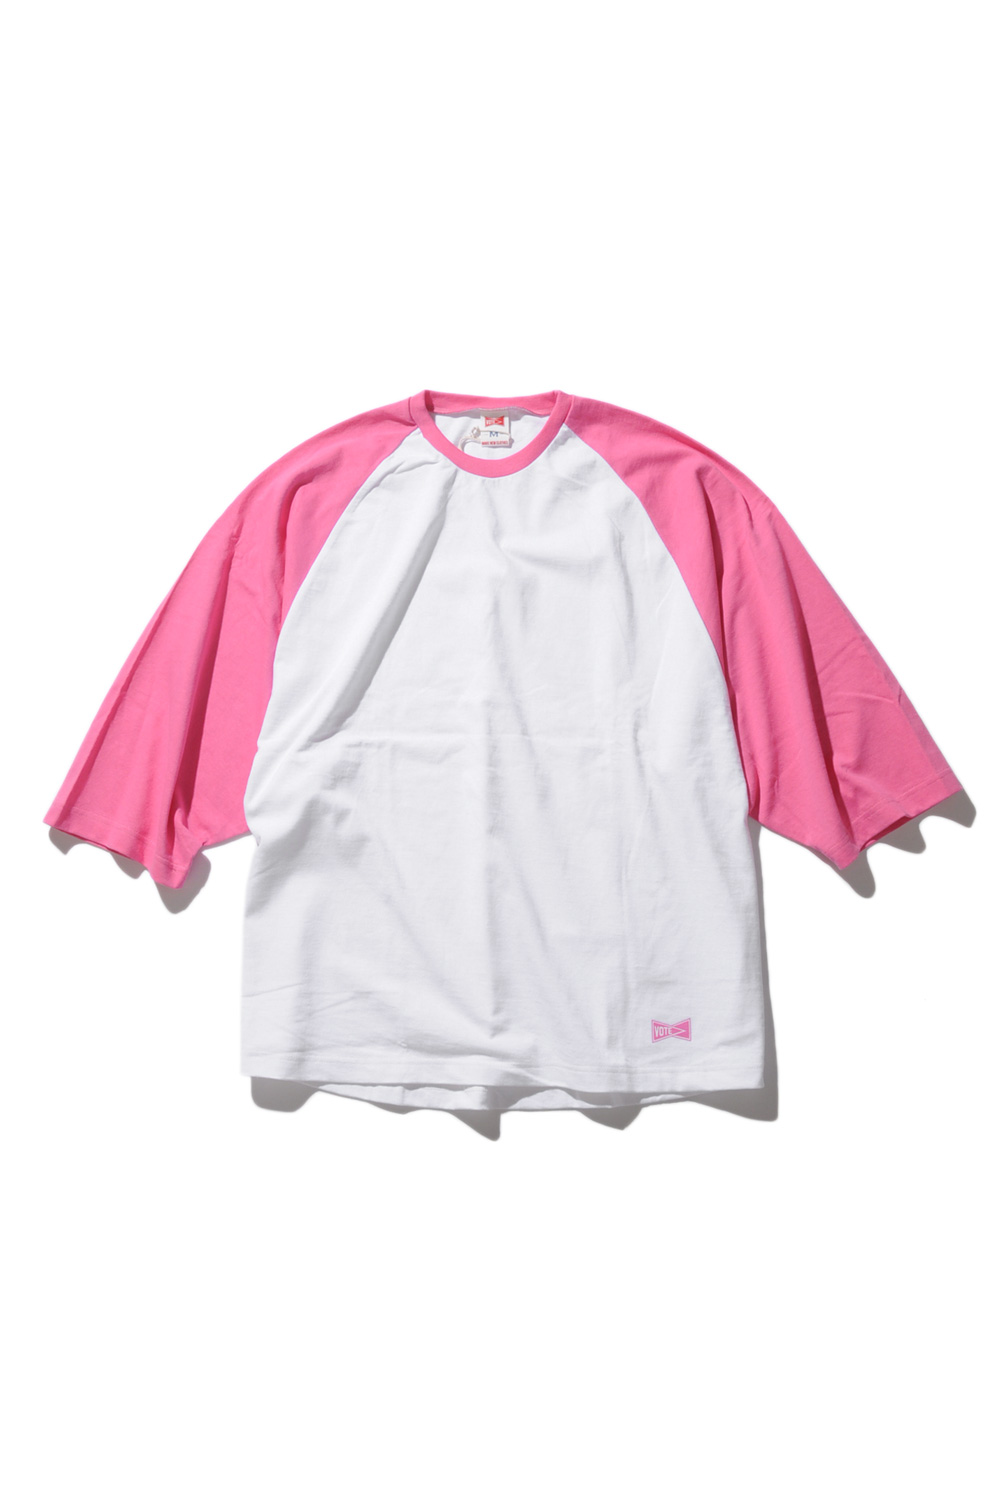 画像1: 【VOTE MAKE NEW CLOTHES】BBB TEE (1)